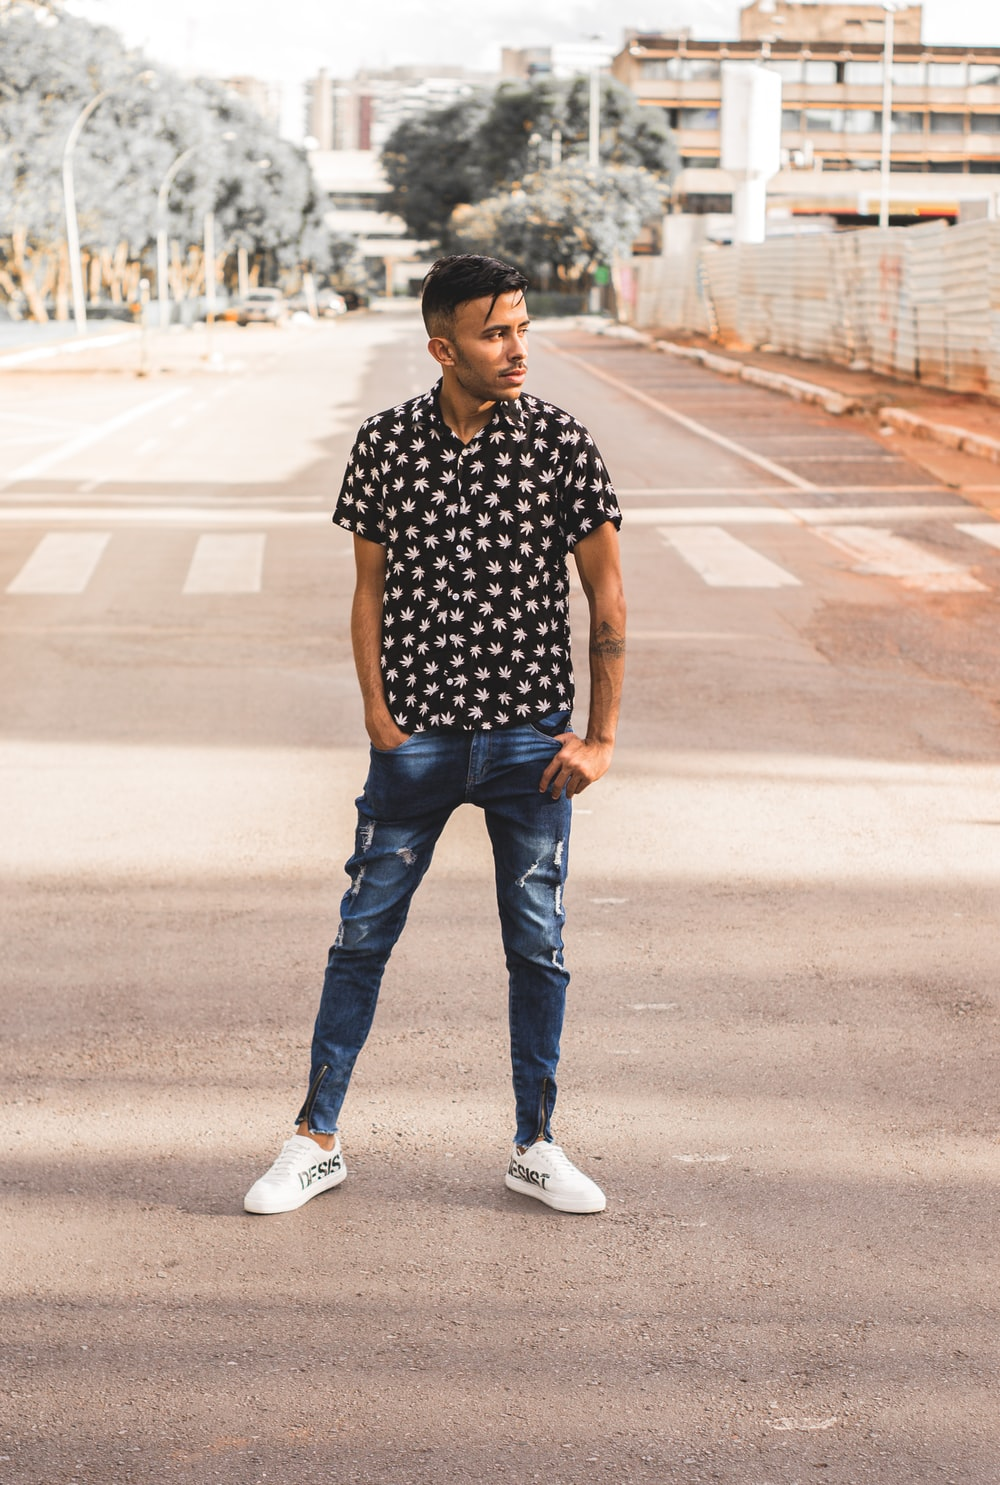 man in black and white polka dot shirt and blue denim jeans standing on road during